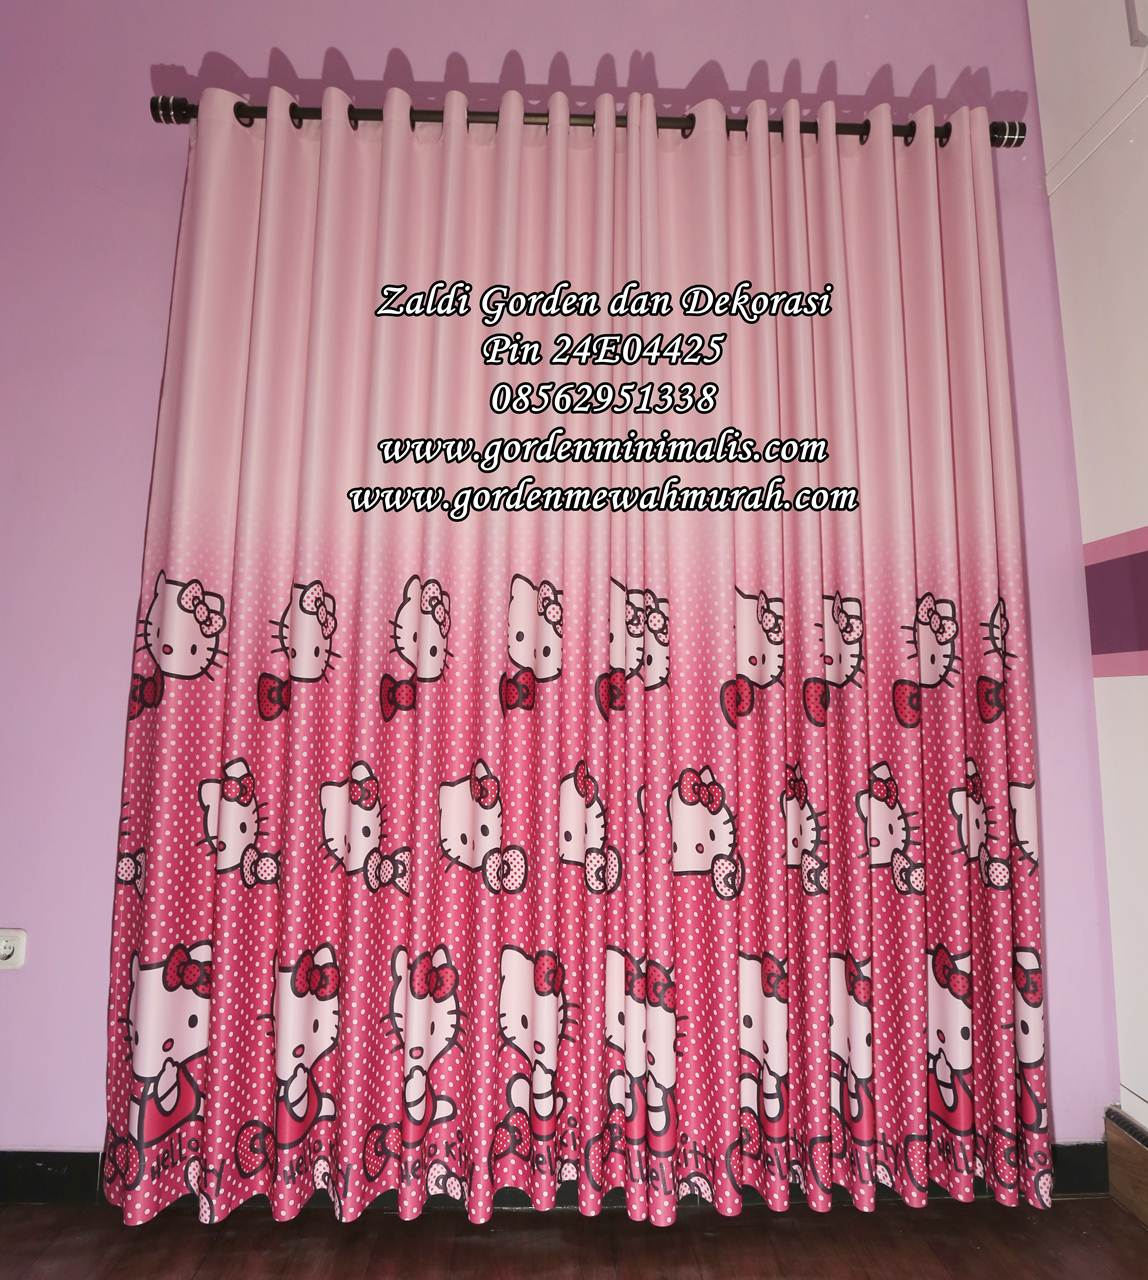 Jual Gorden Hello Kitty Murah Bahan Blackout berkualitas